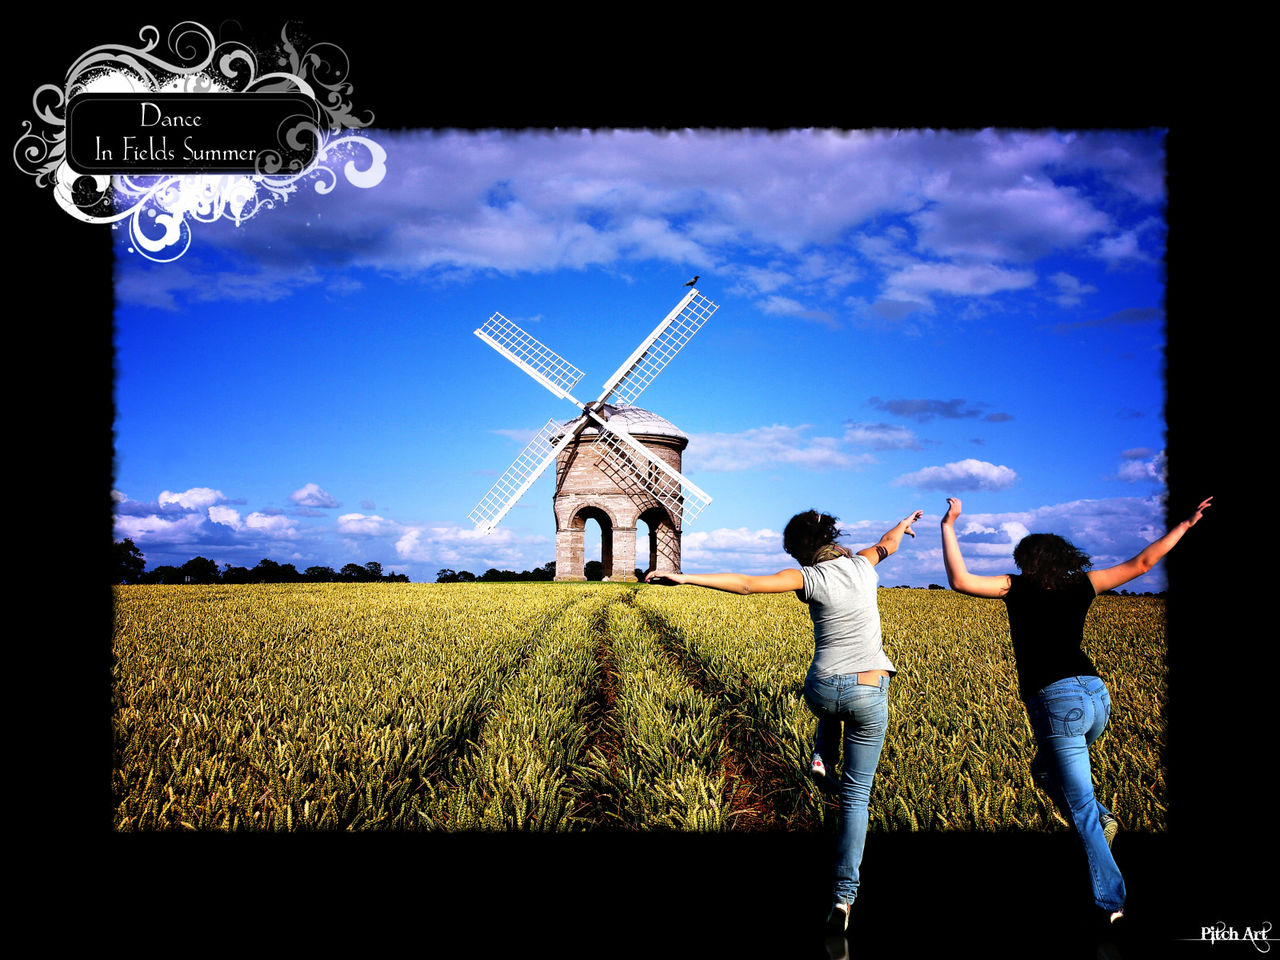 Studio Pitch Art Dance In Fields Summer (Color)